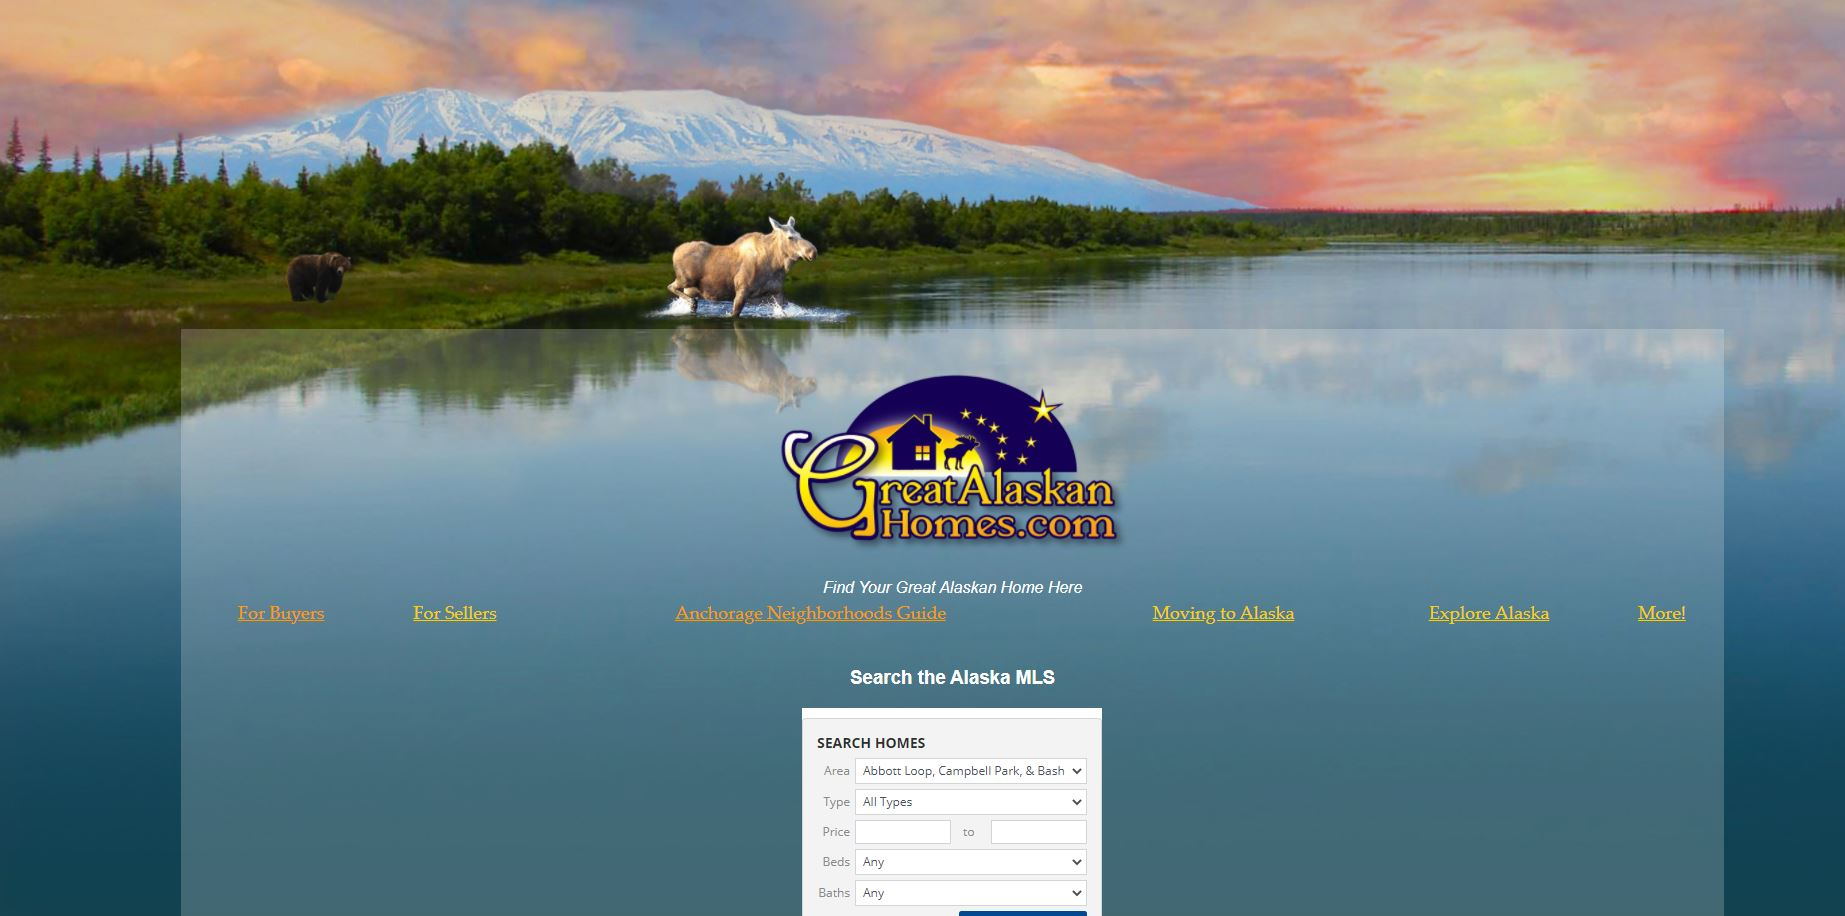 greatalaskanhomes.com - Alaskan living and real estate and home ownership resources